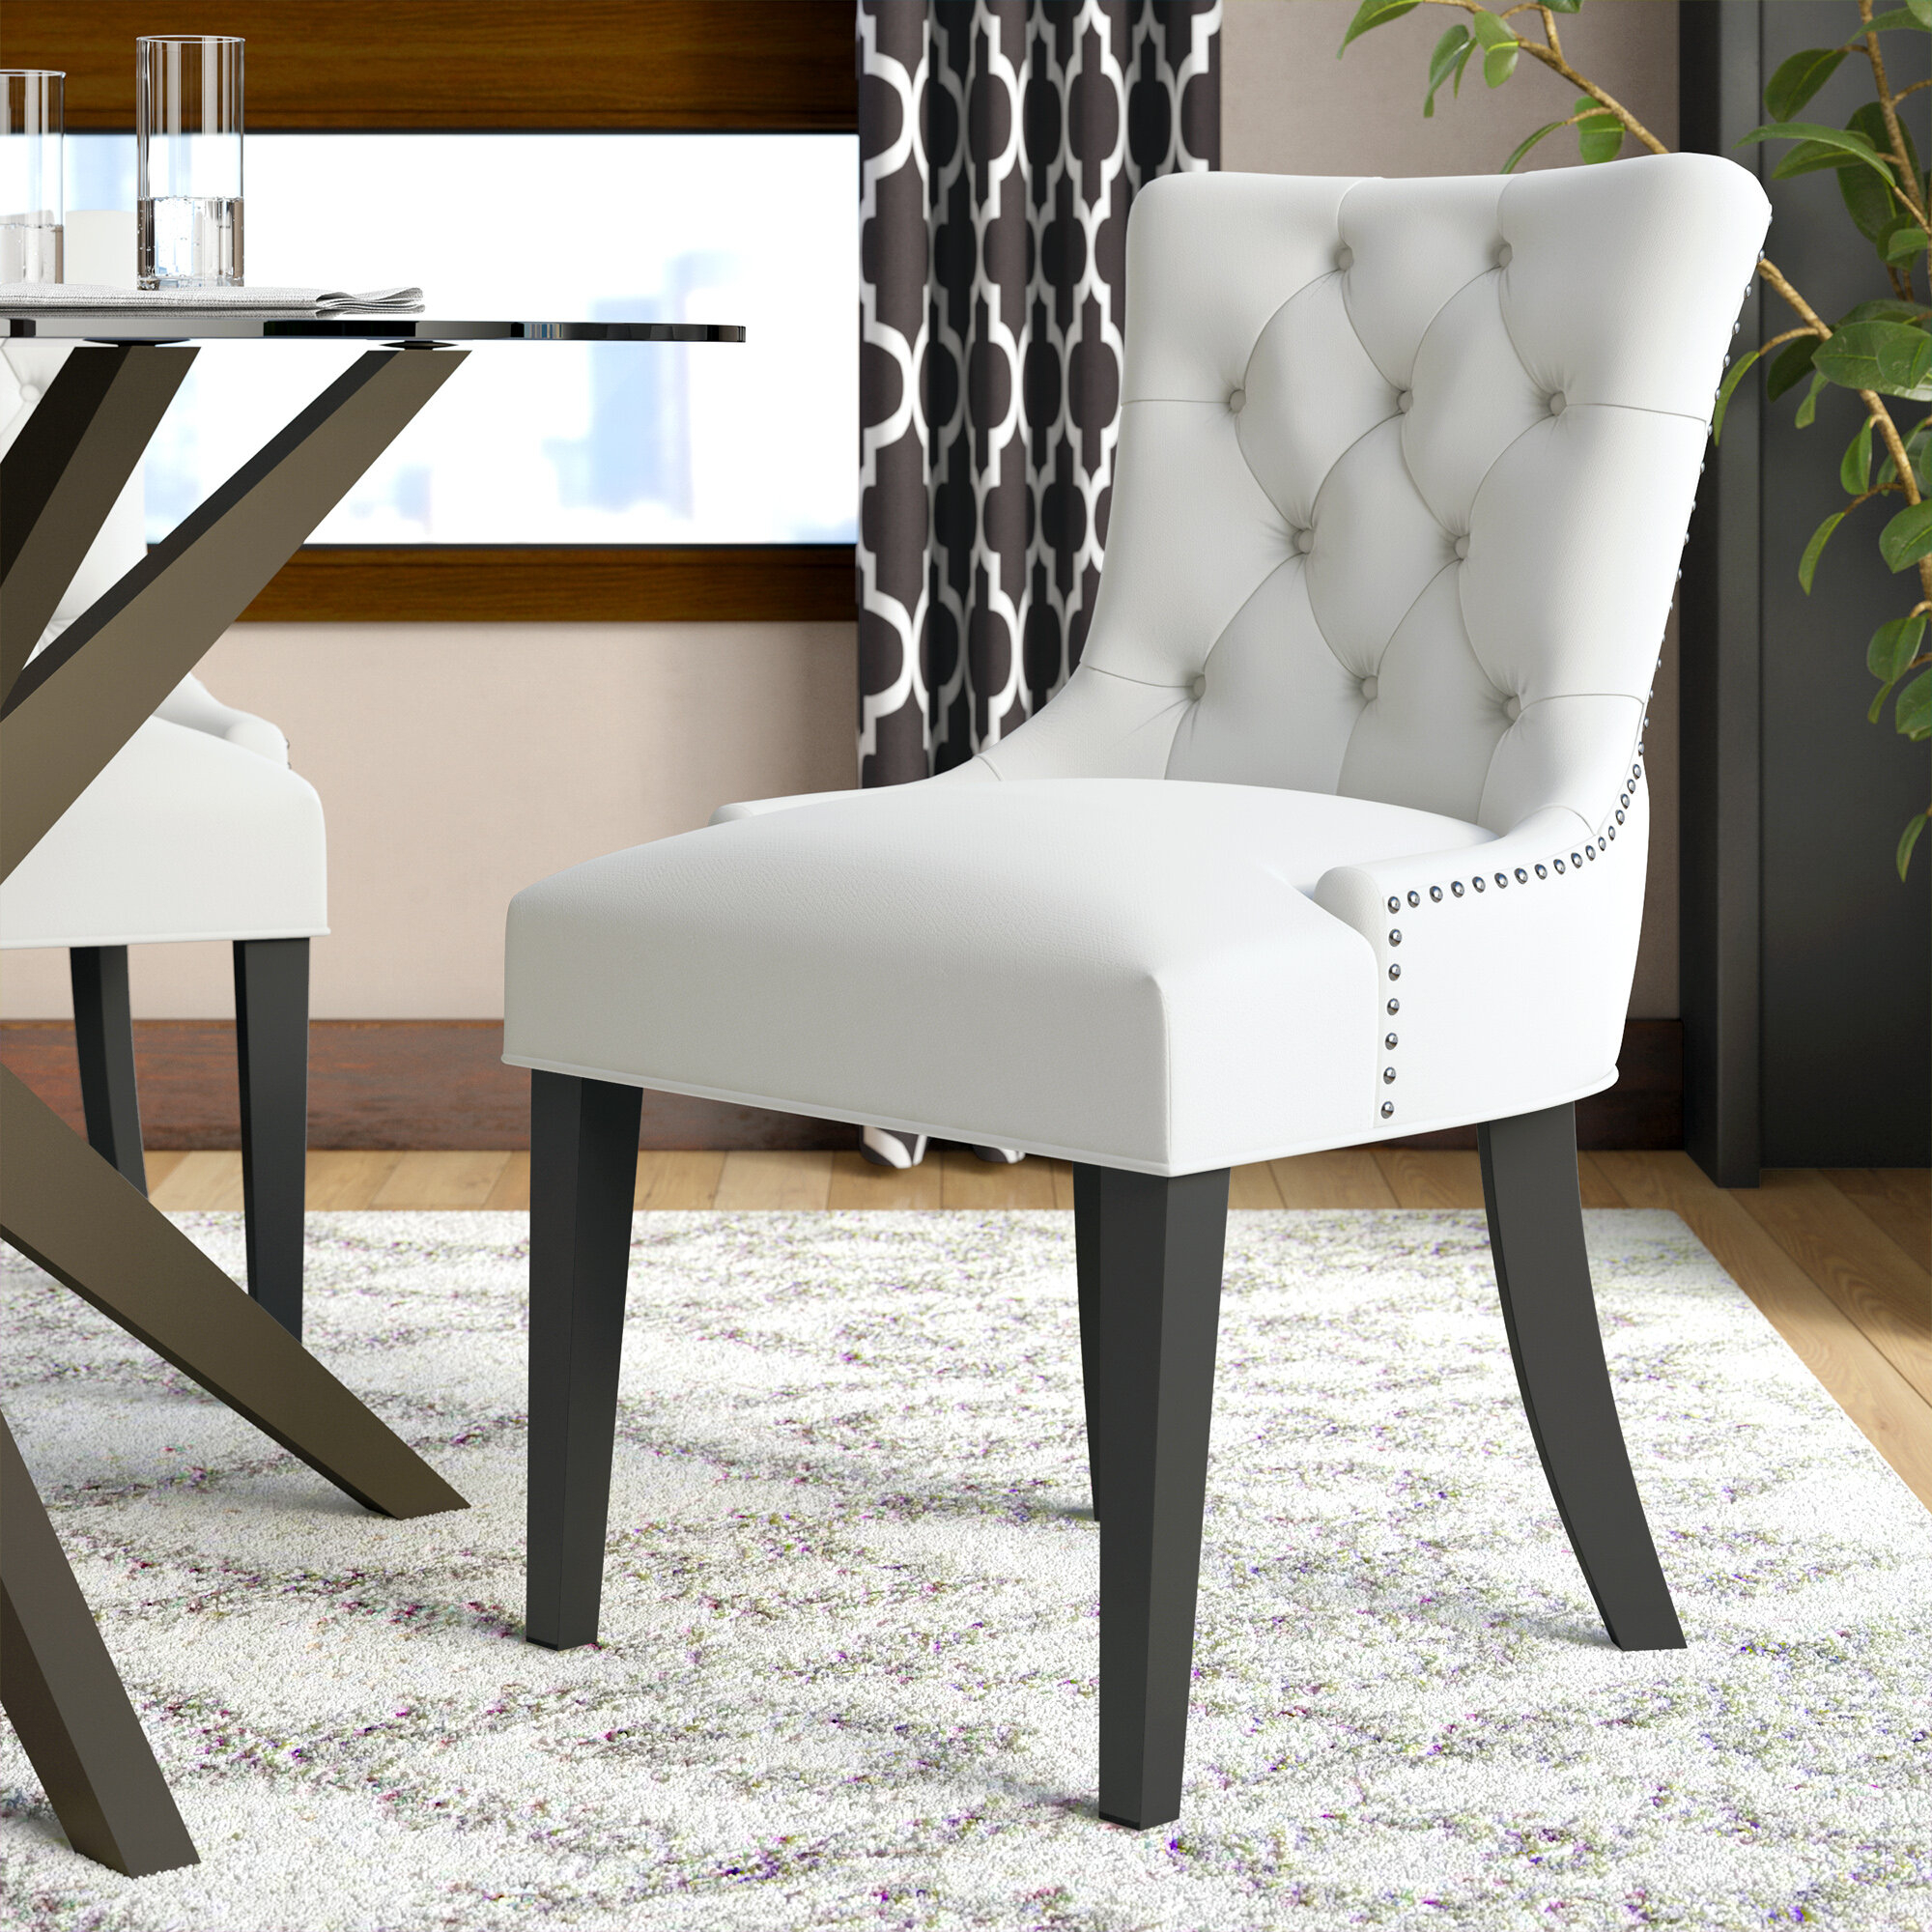 Carlton Tufted Upholstered Dining Chair With Carlton Wood Leg Upholstered Dining Chairs (View 5 of 15)